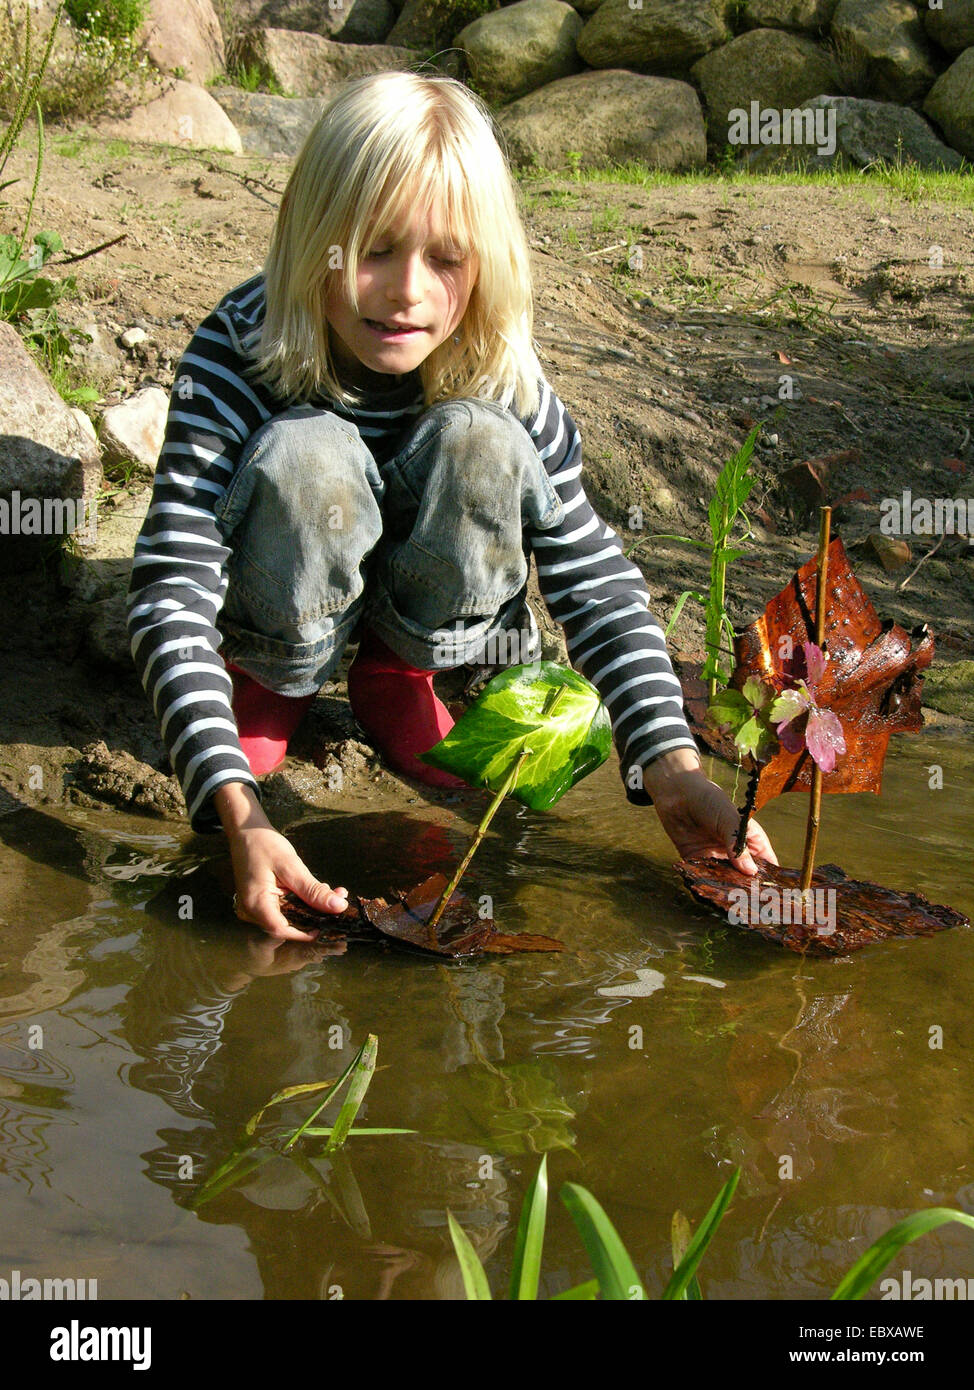 child at a creek putting two bark ships in the water - Stock Image